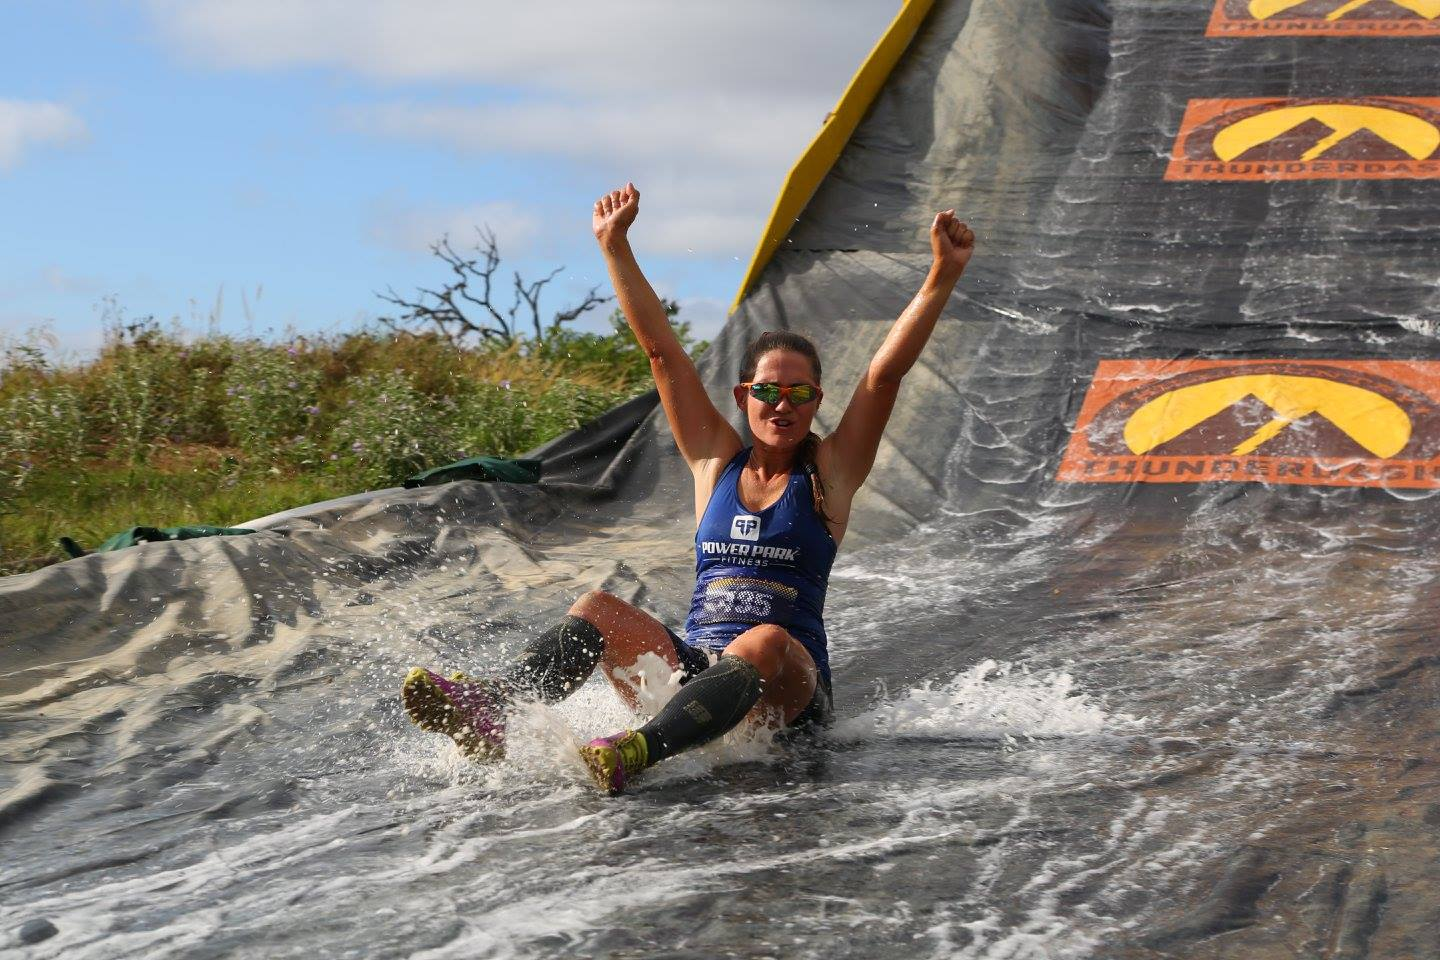 Race Interview Thunderdash Mud Run Ocr Obstacle